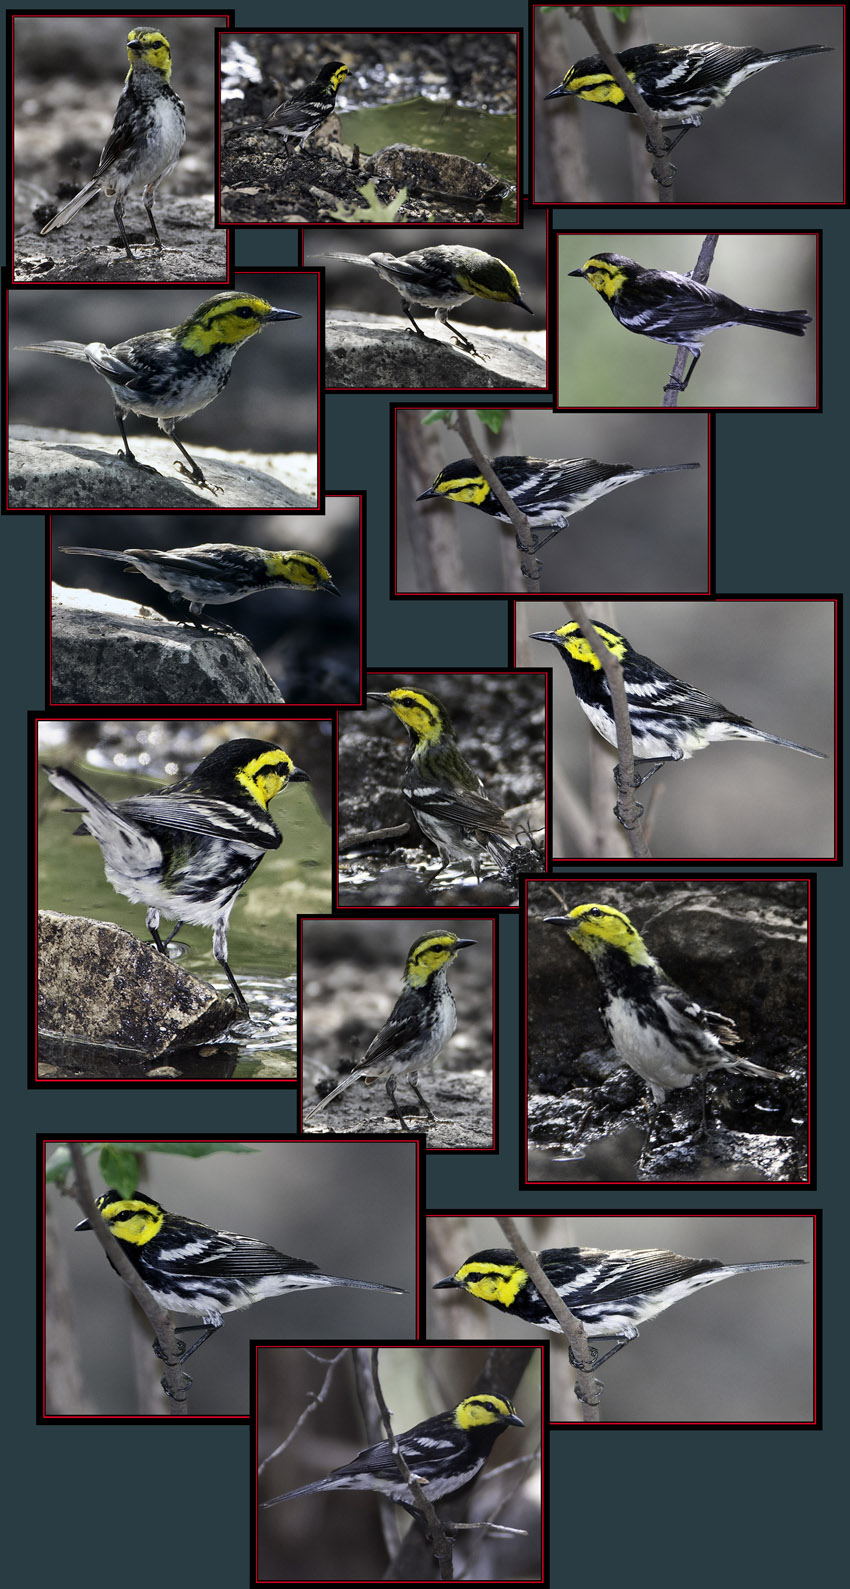 Golden-cheeked Warbler Files - Friedrich Wilderness Park - San Antonio, Texas